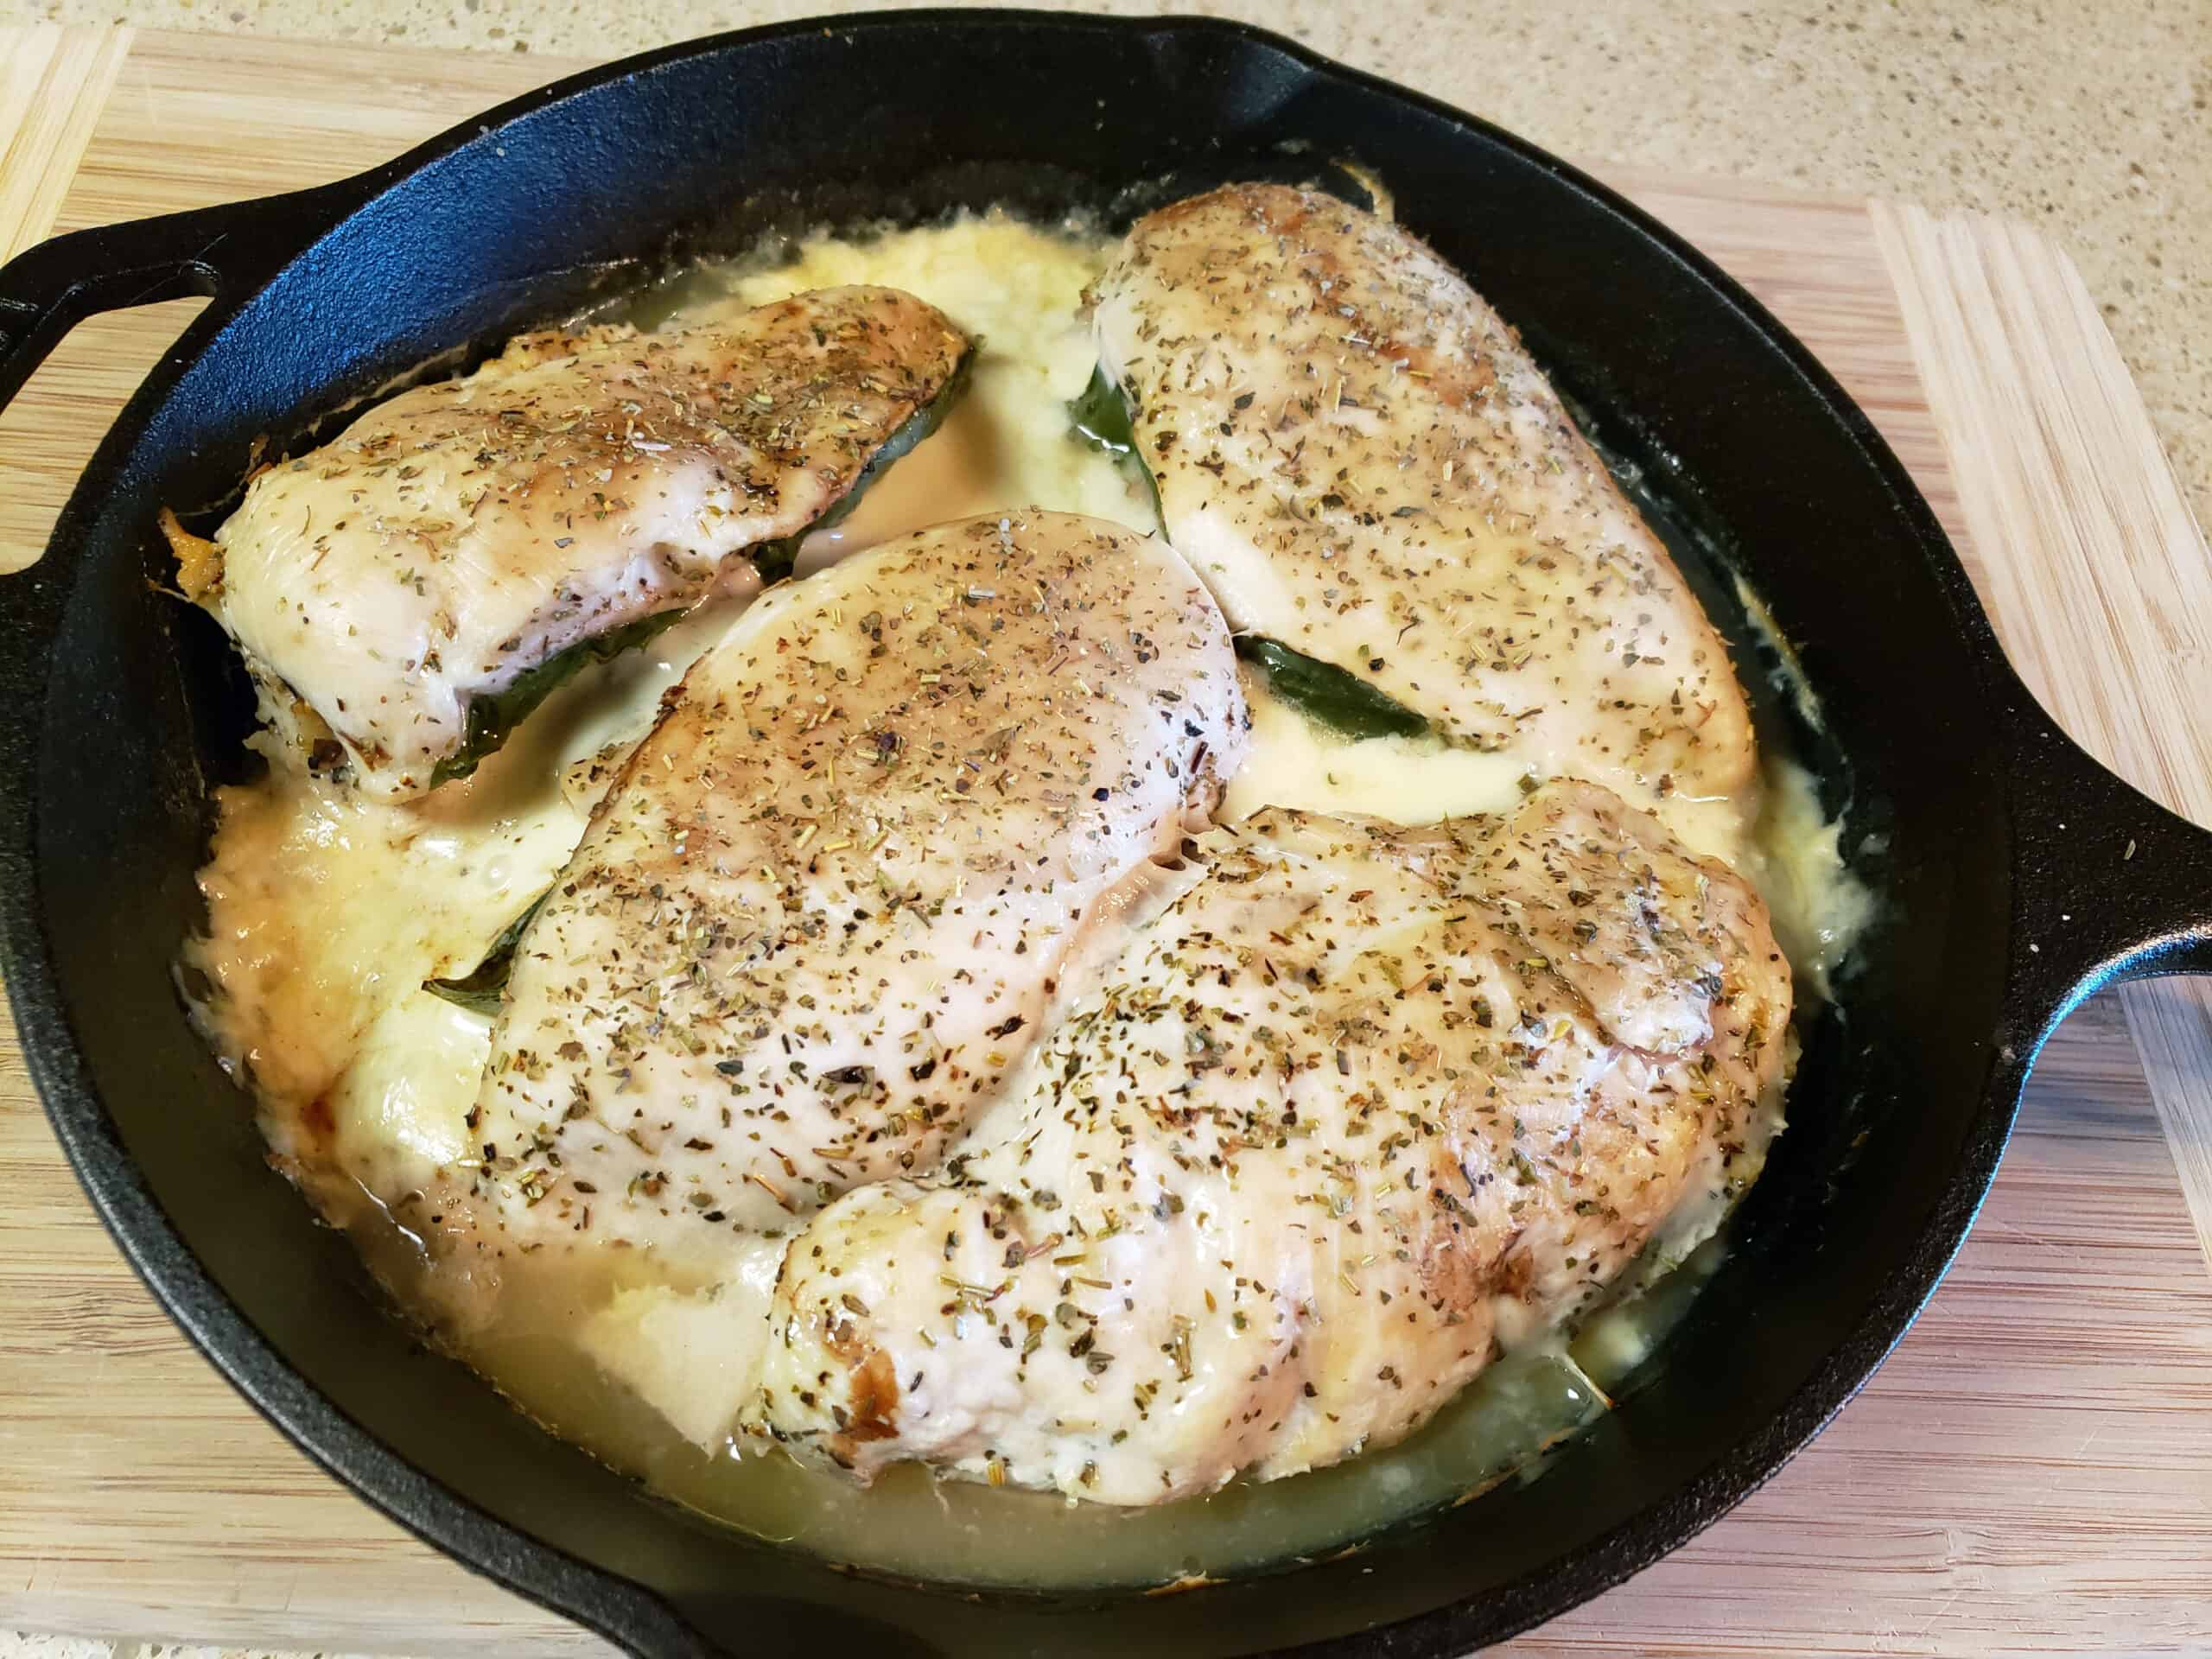 baked stuffed chicken in cast iron skillet